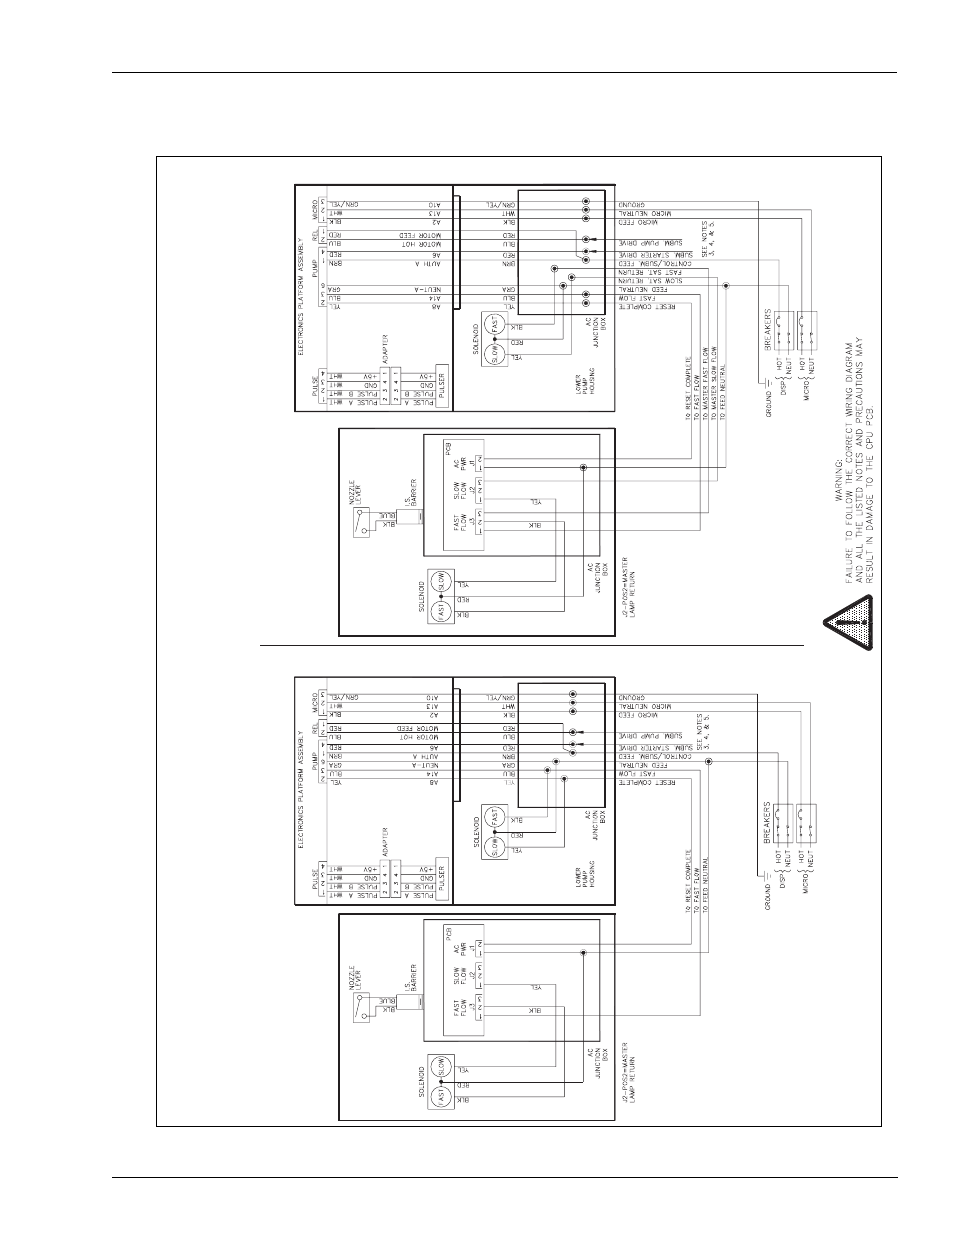 Gasboy Atlas Wiring Diagram